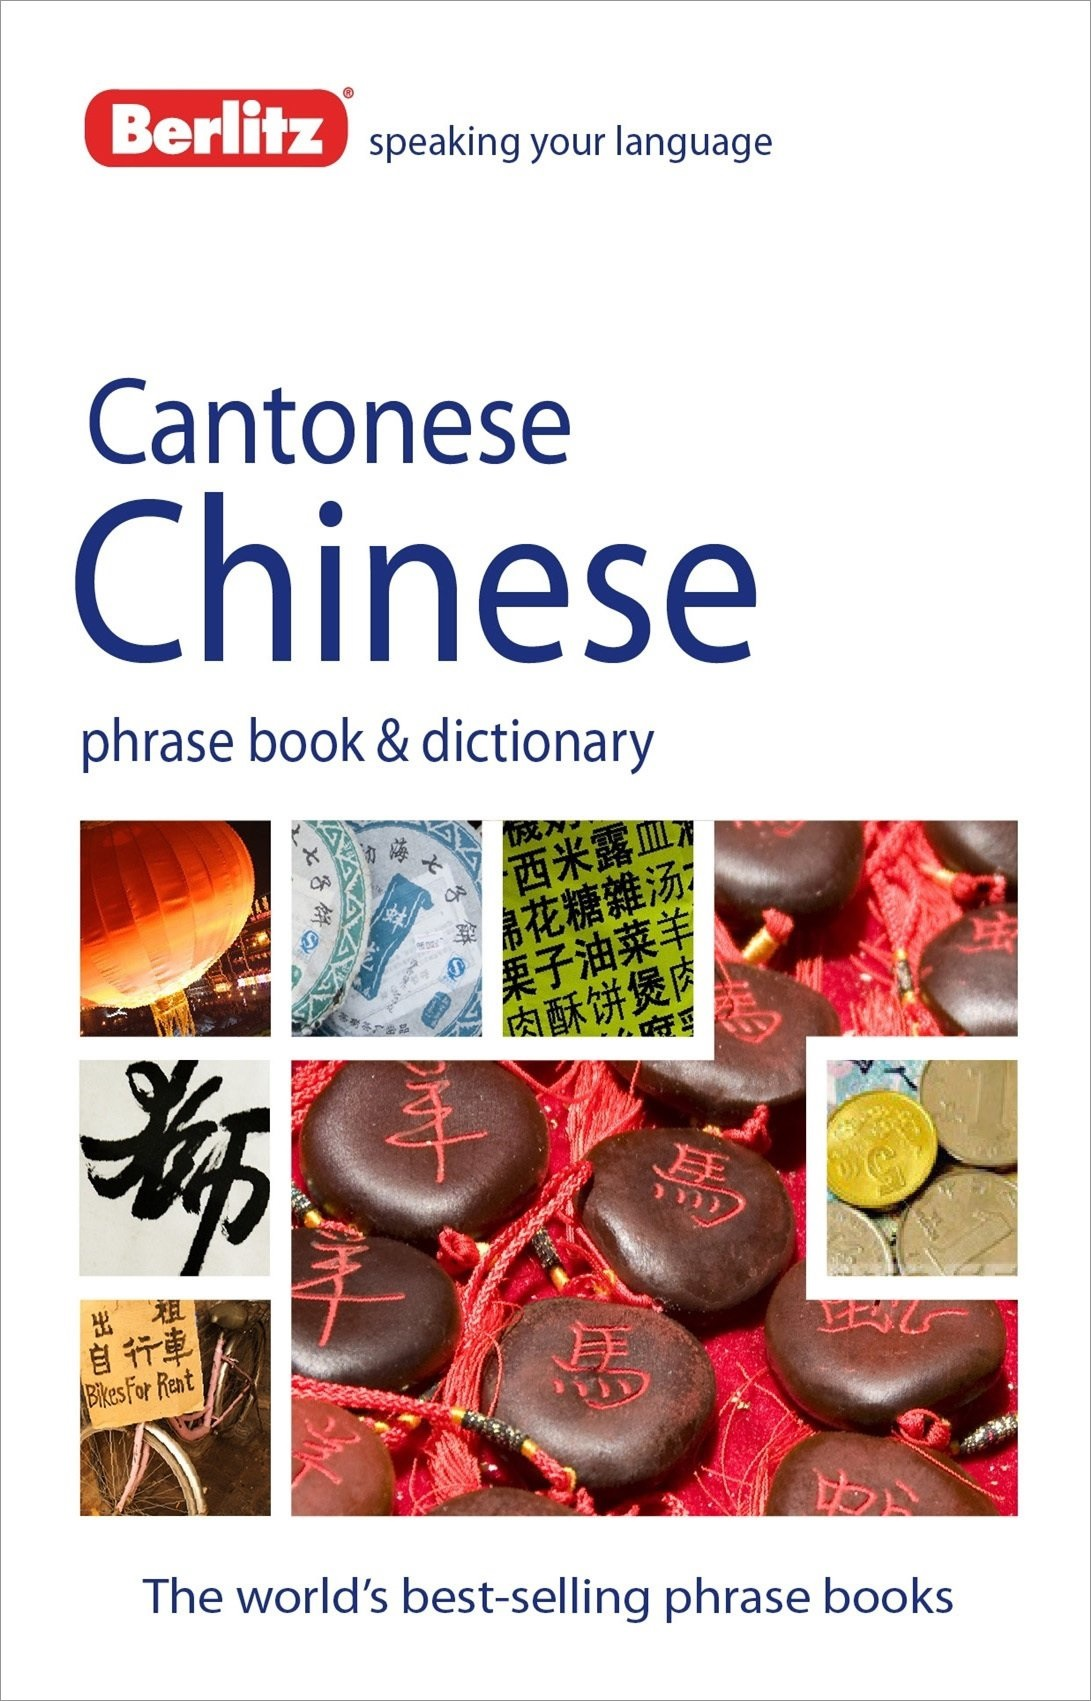 Cantonese Chinese phrase book & dictionary